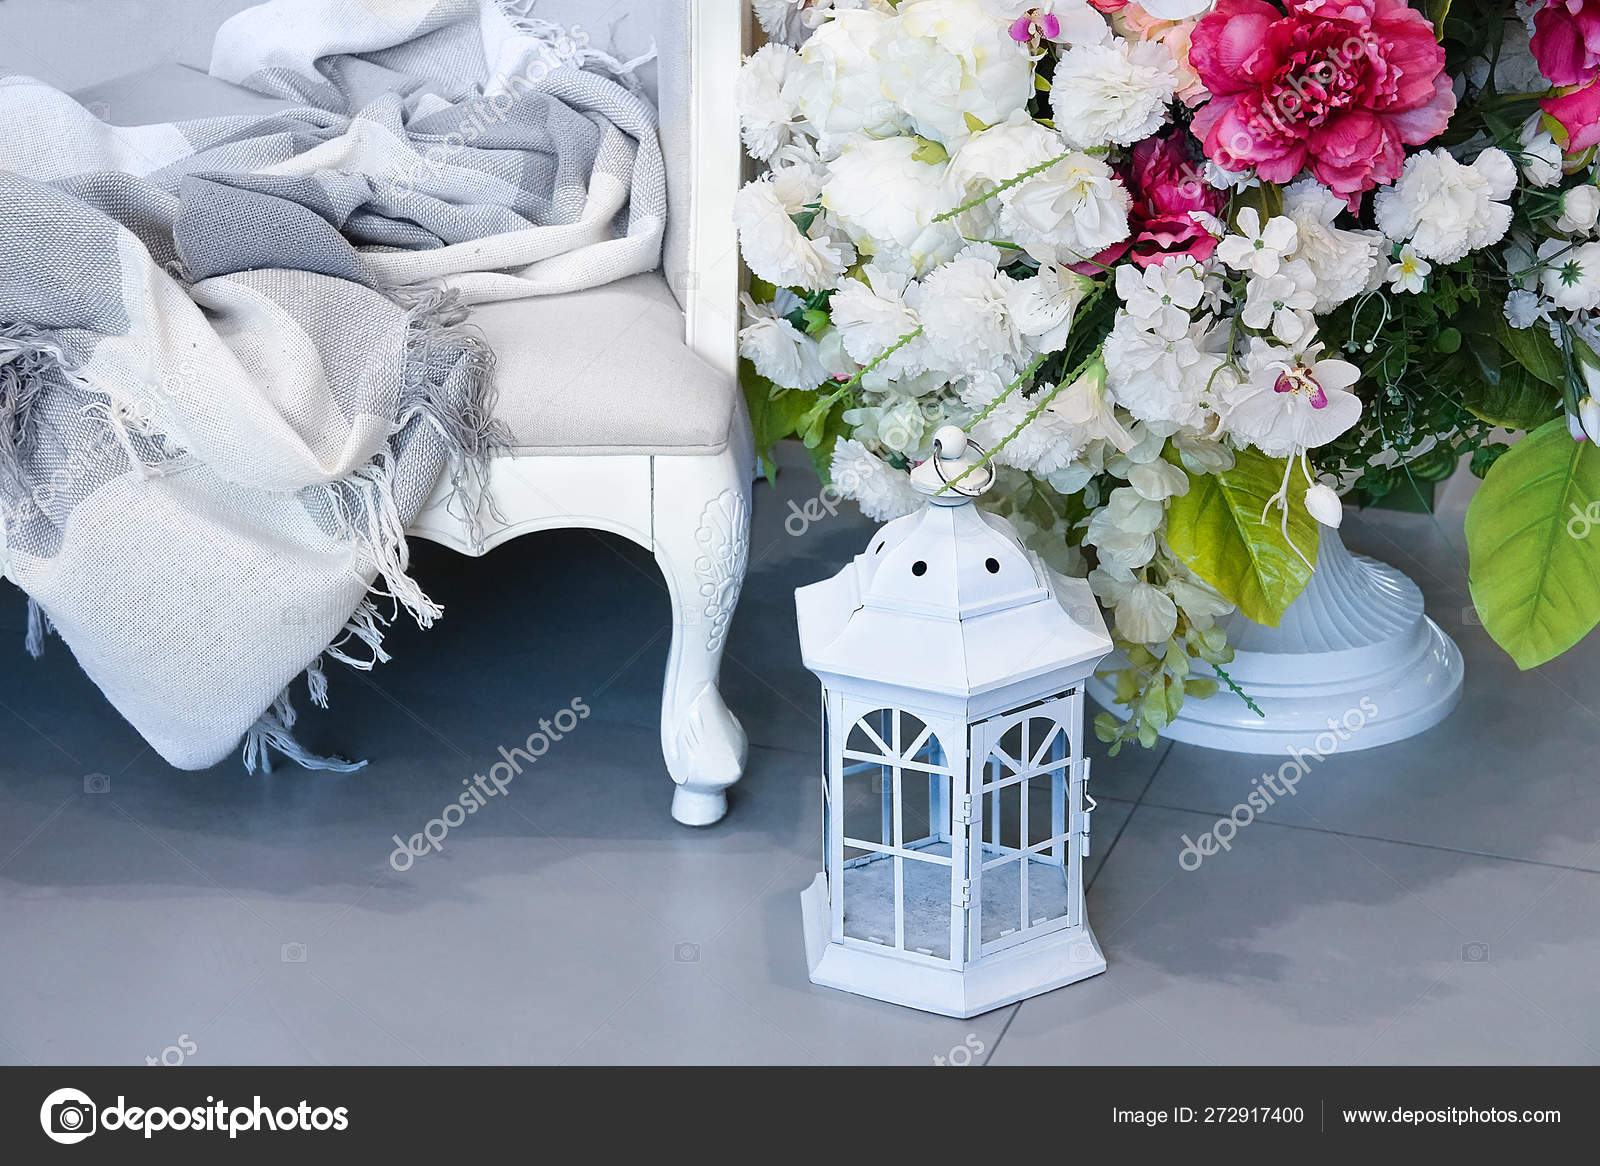 Interior Room White Sofa Blanket Flowers Vase White Lantern Candle Stock Photo Iulal 272917400